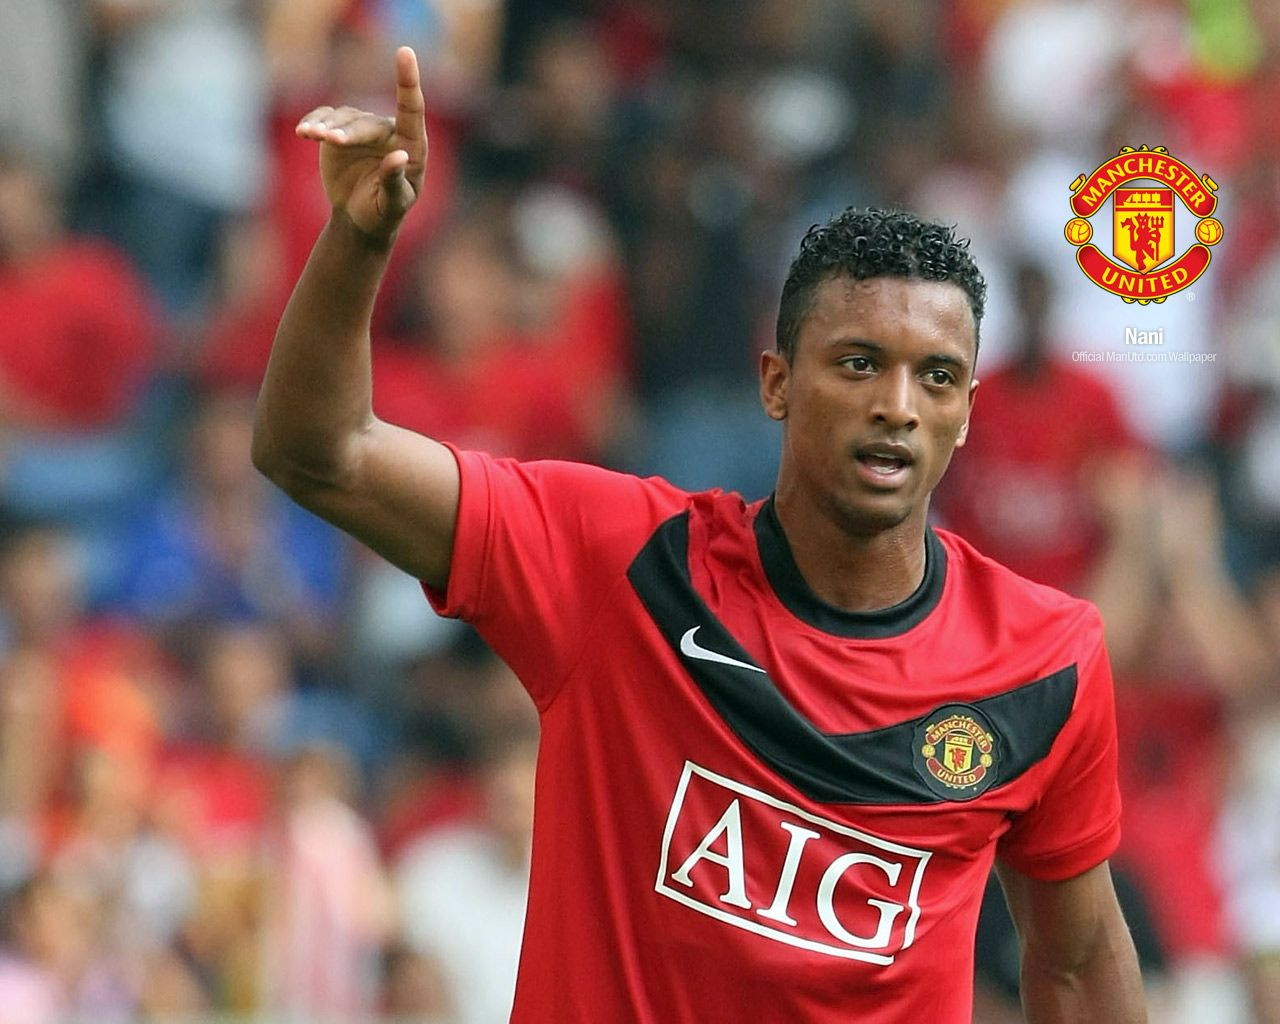 The Best Footballers: Nani is a Portuguese football player plays as a ...